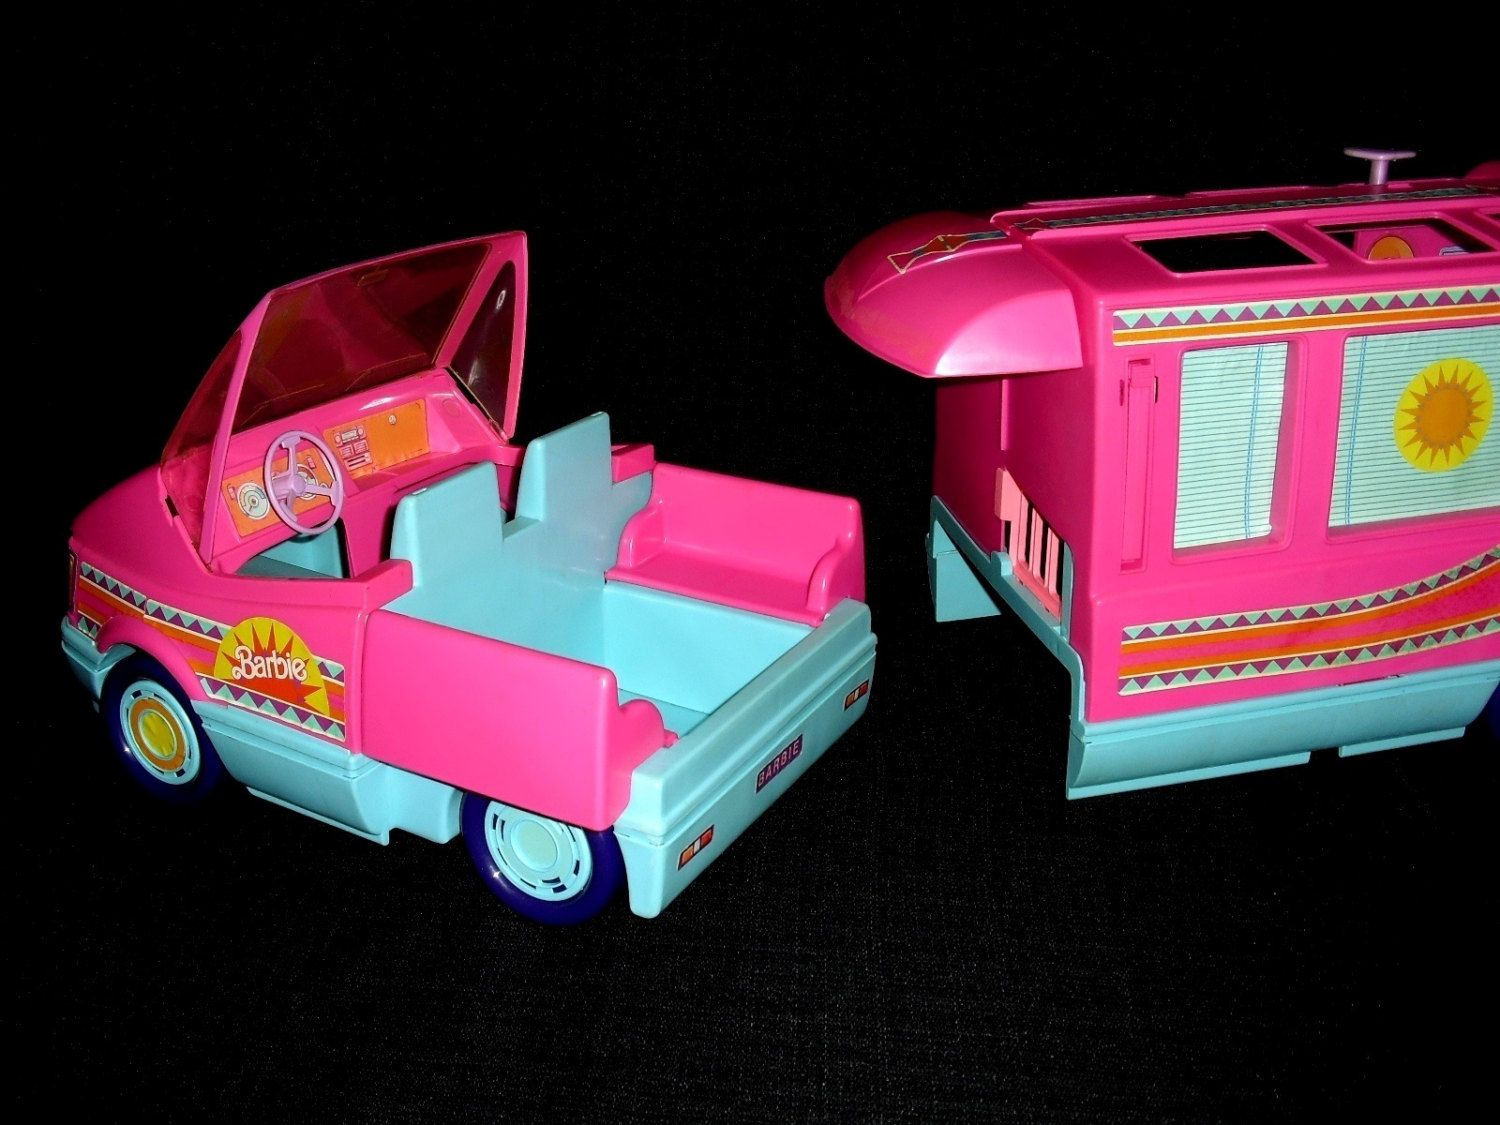 rare vintage 1988 barbie mattel western fun toy. Black Bedroom Furniture Sets. Home Design Ideas